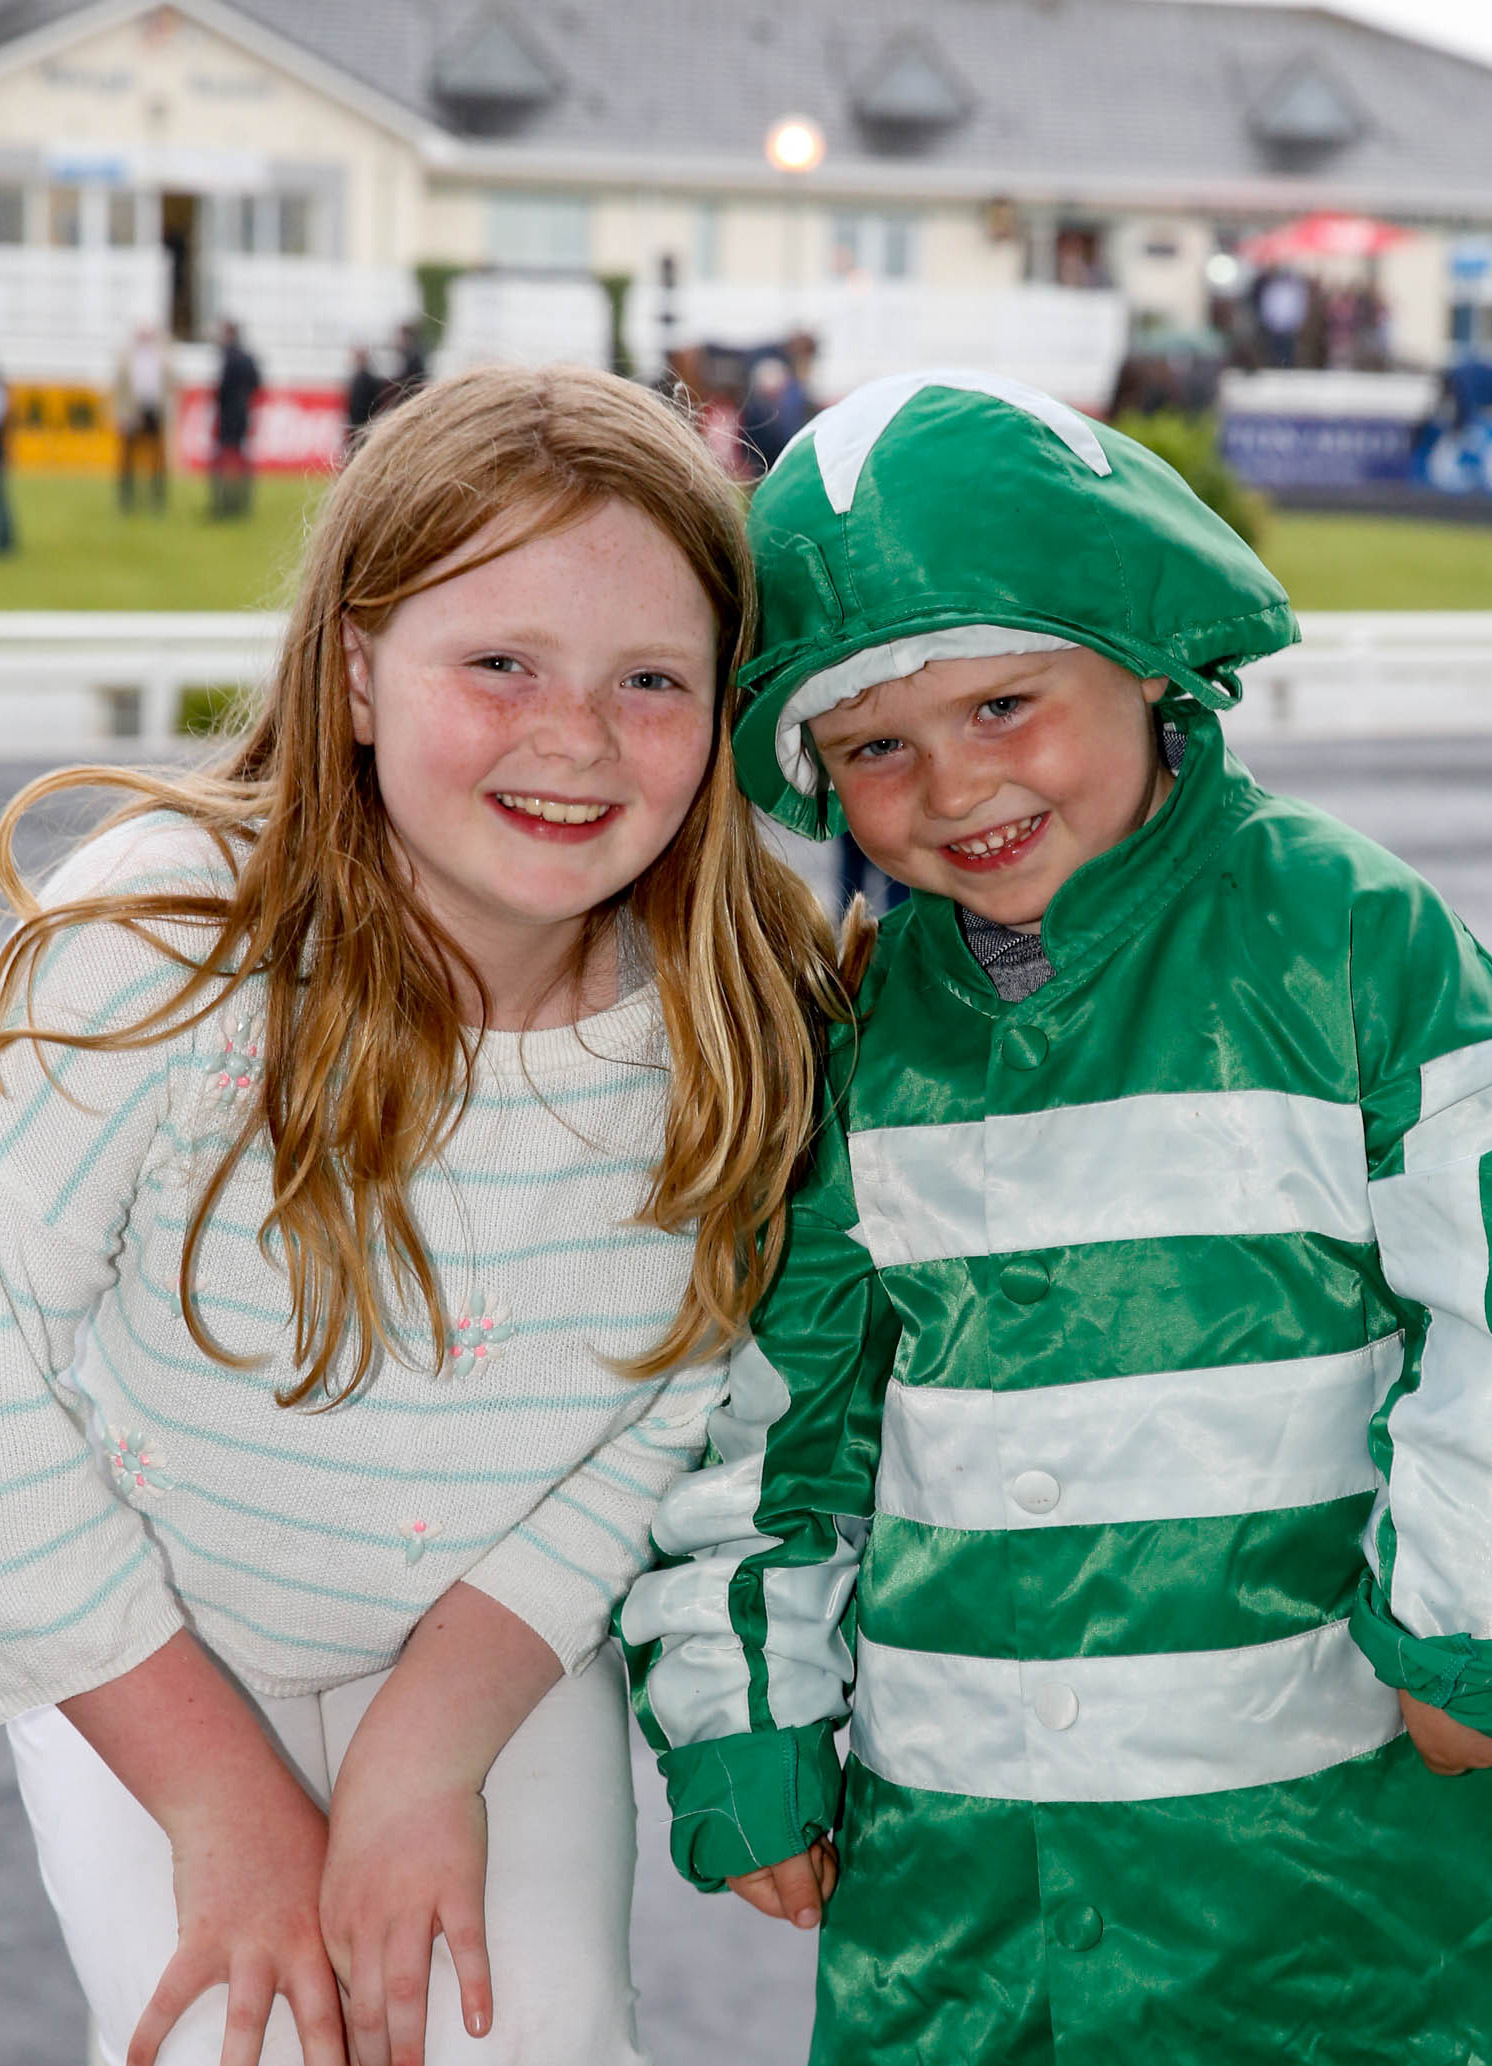 11-6-16 coral.ie Race Day at Limerick Racecourse.Grace and Jack Costello, Oranmore.Picture: Keith Wiseman